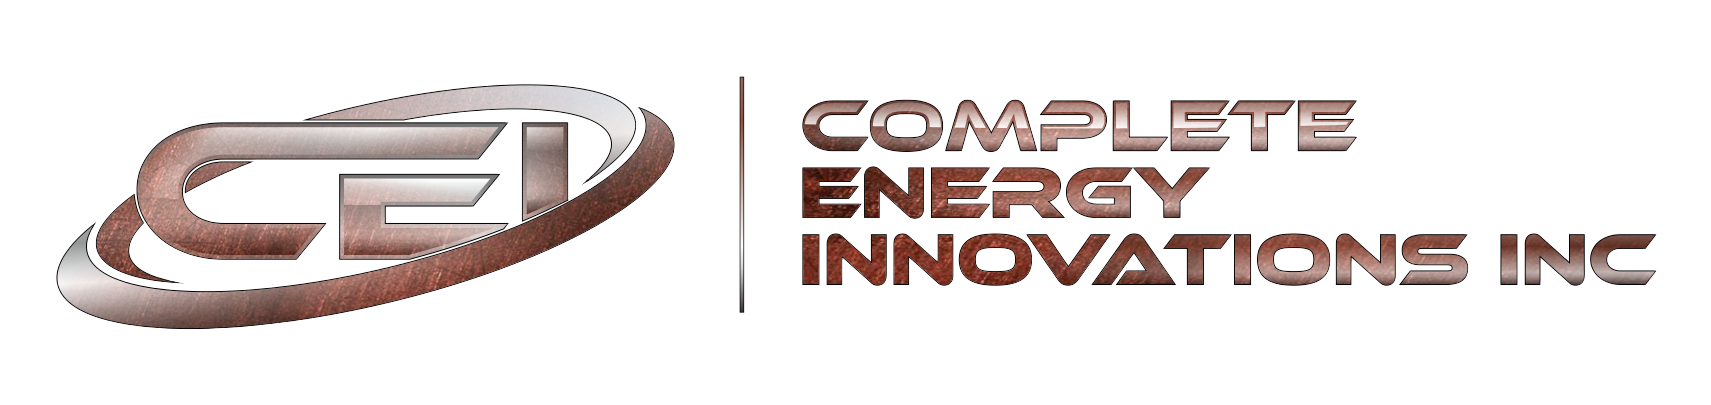 Thanks to Complete Energy Innovations Inc. for their generous sponsorship!